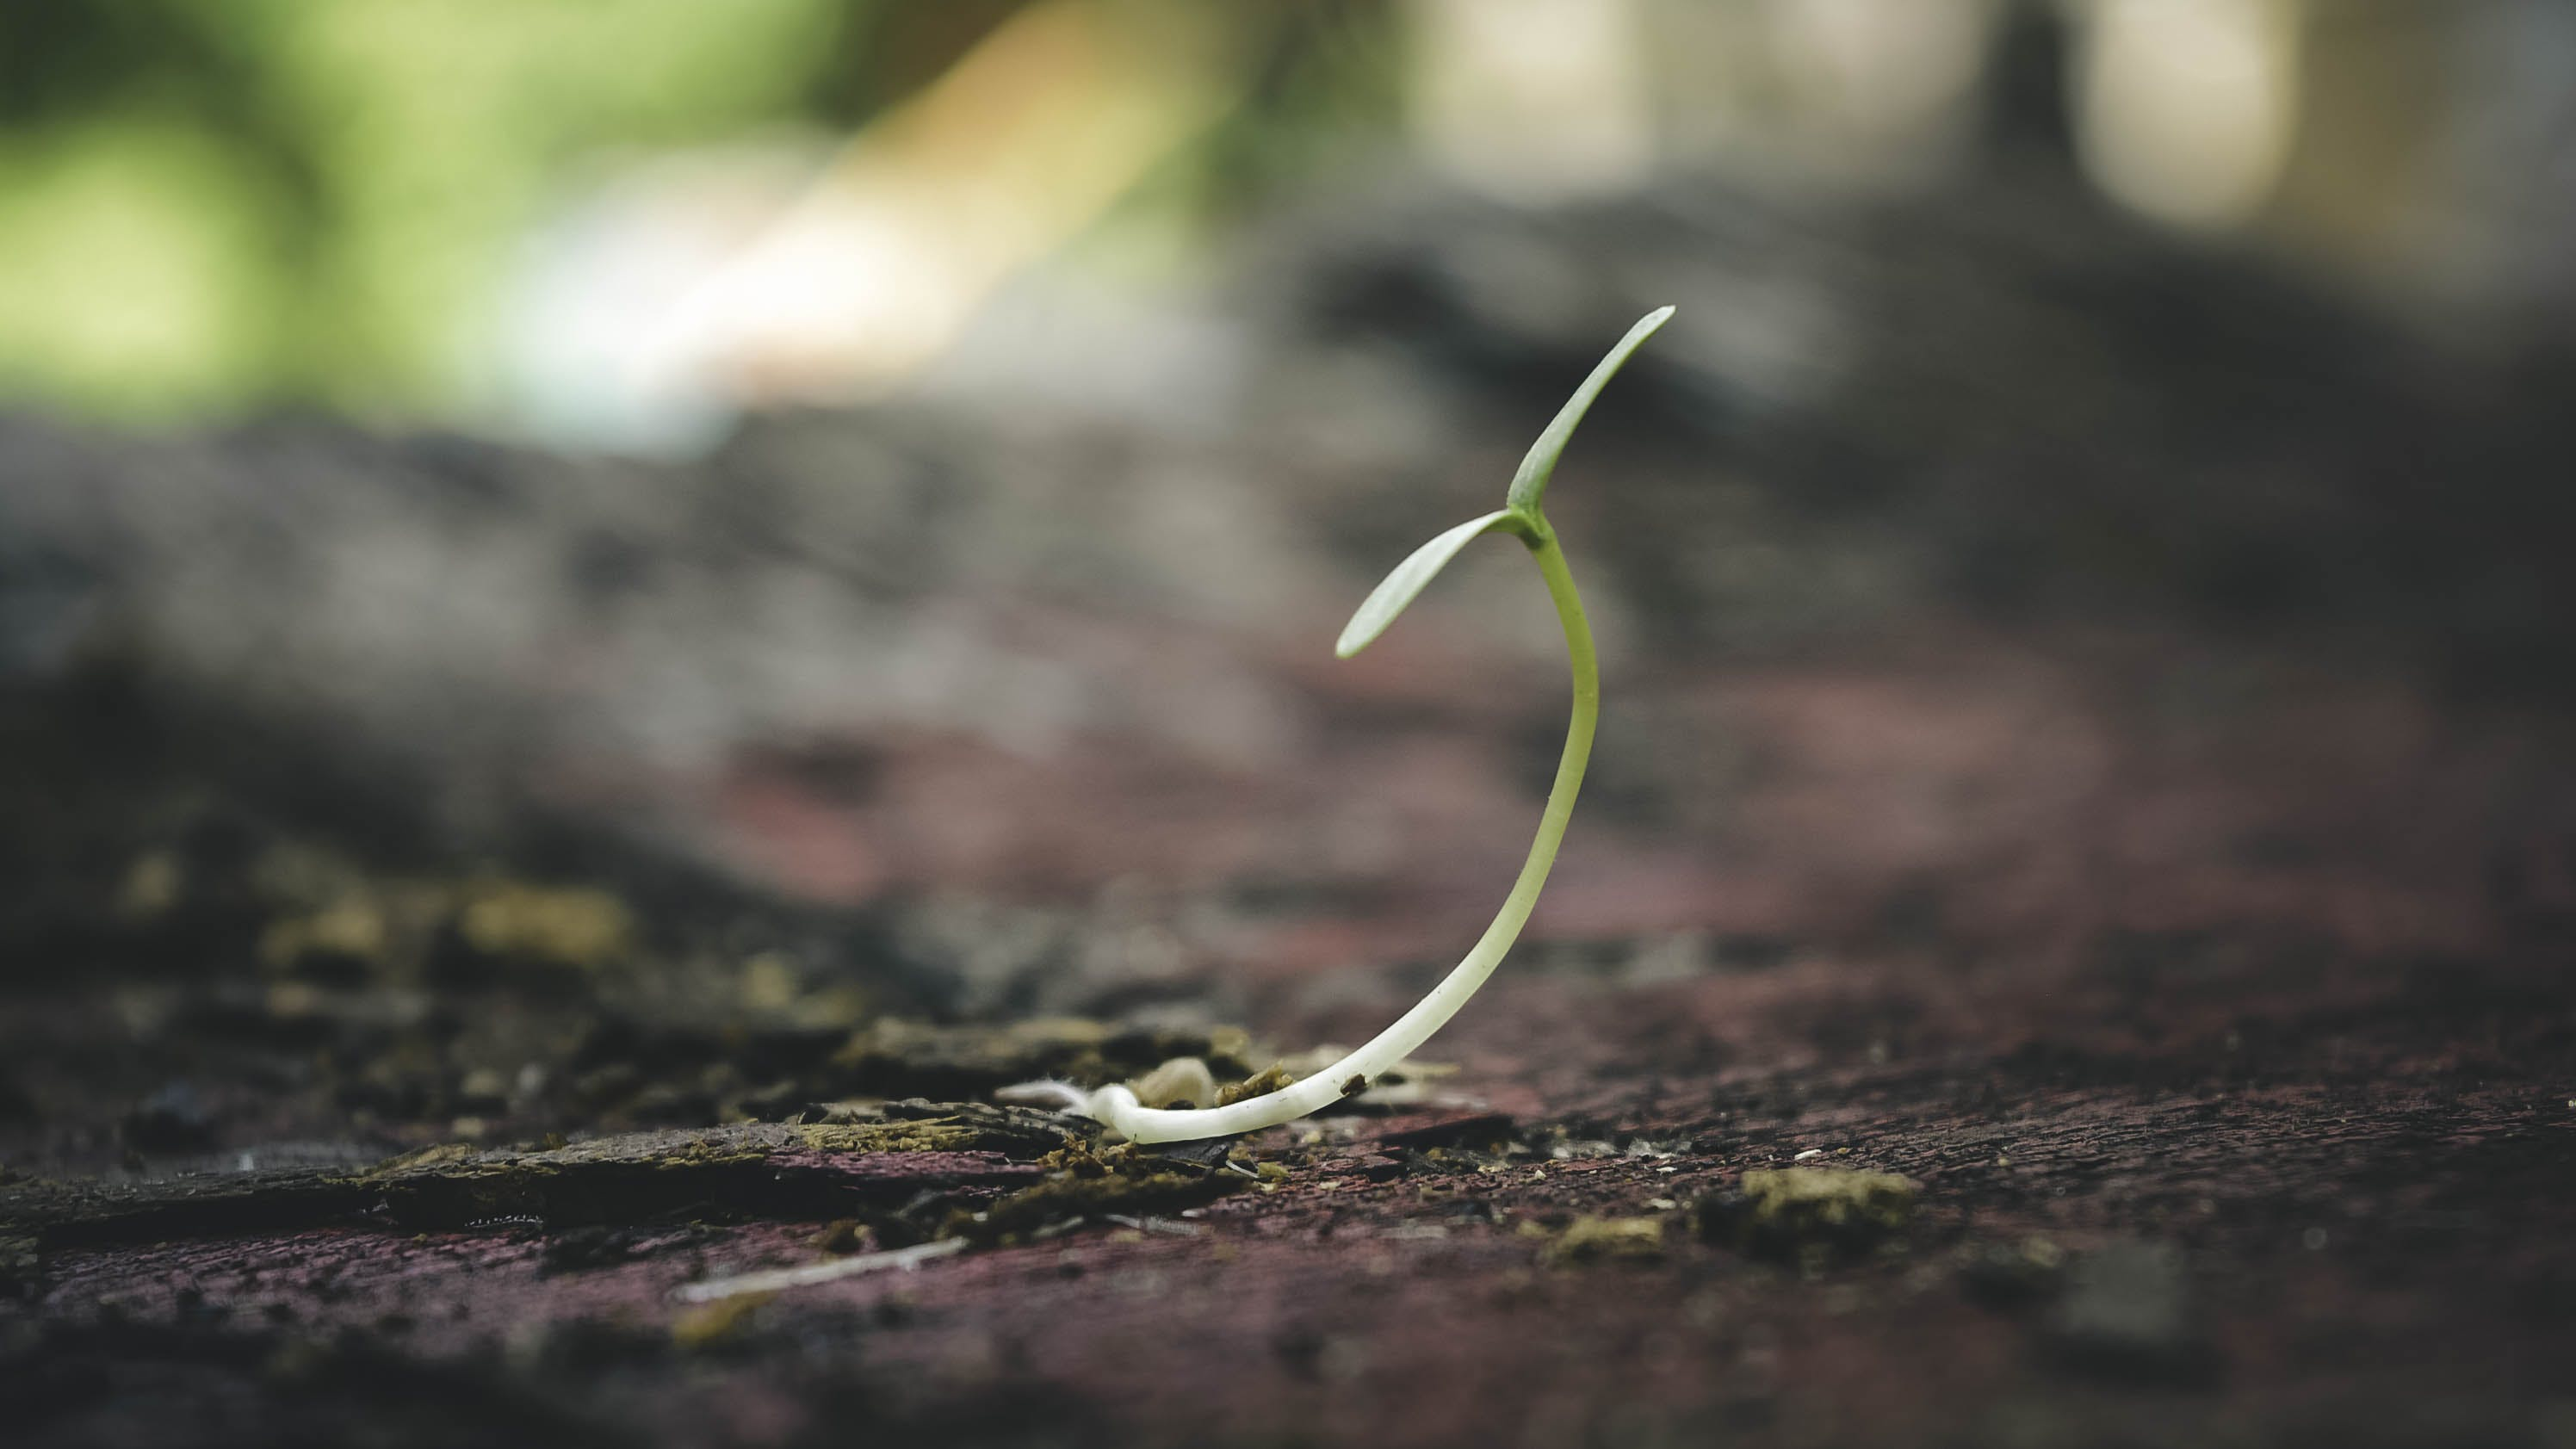 Free stock photo of plant, blur, ground, growth